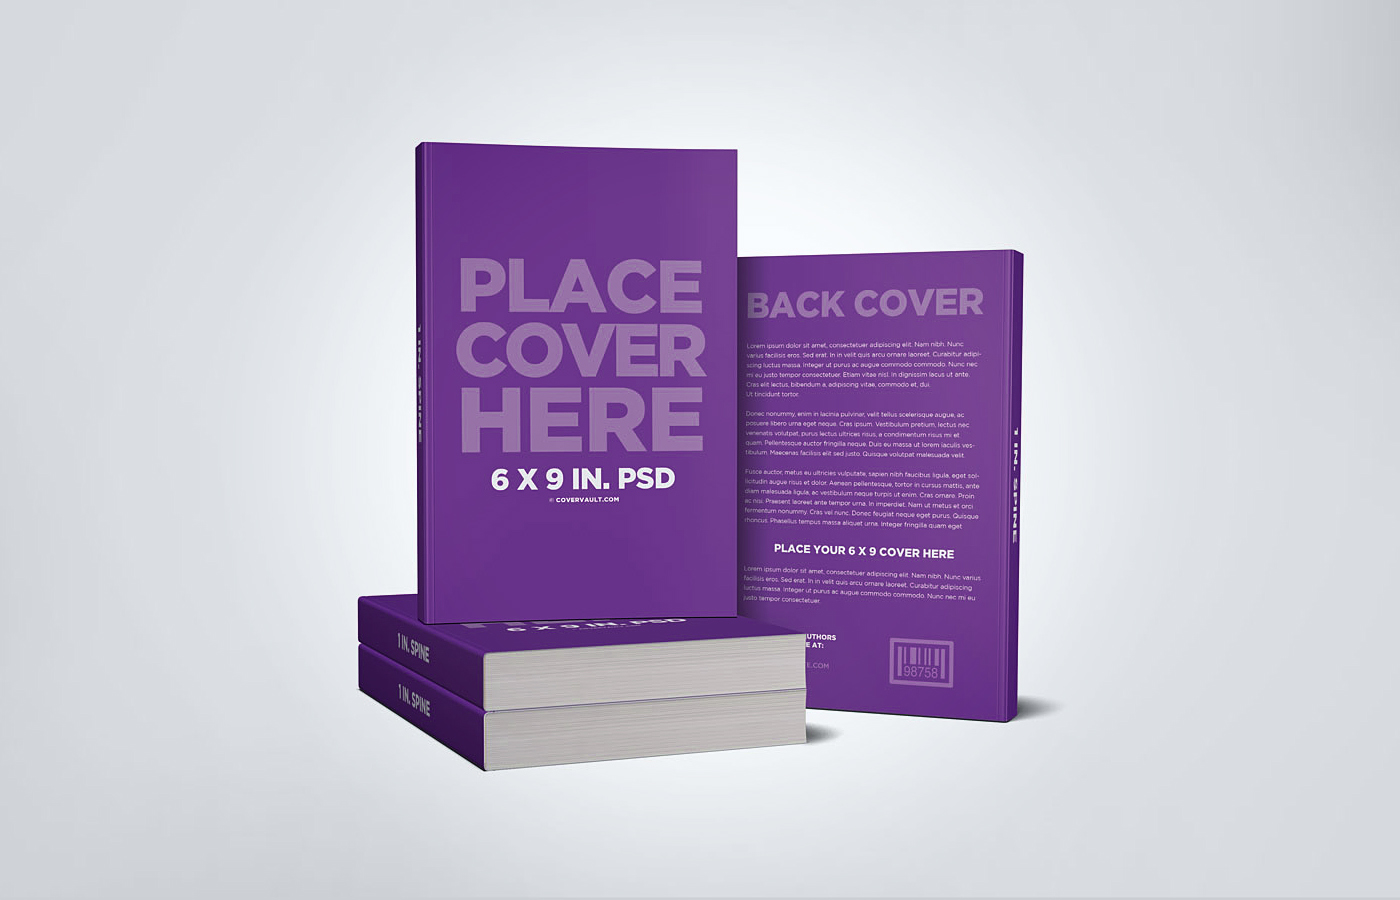 Get 28 online book mockup video effects & Stacked Book Mockup With Back Cover Best Free Mockups